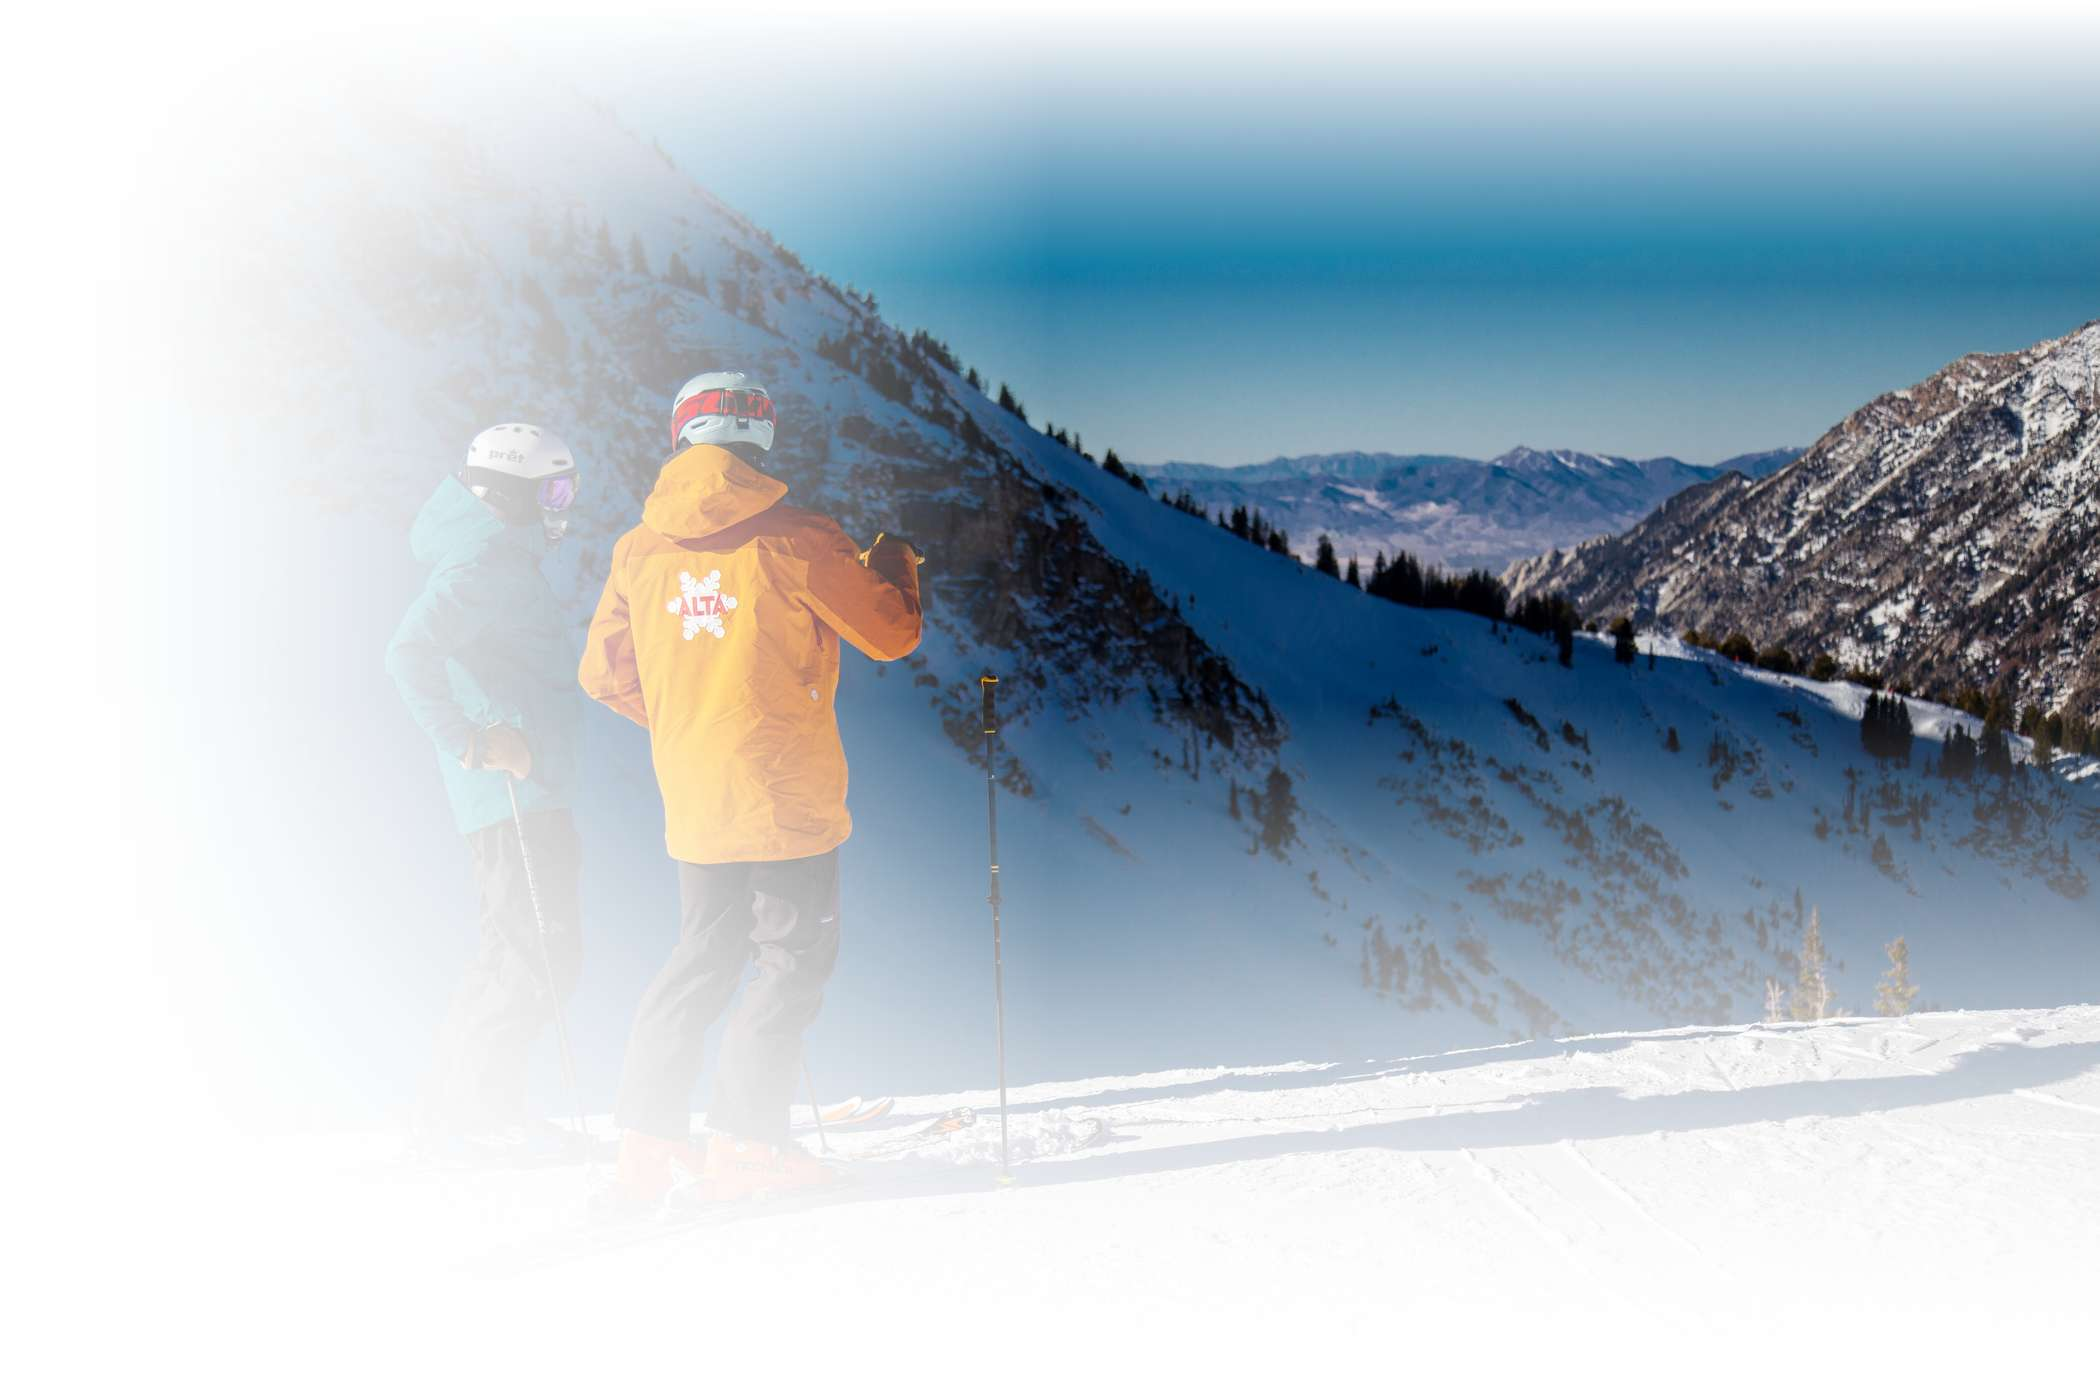 An Alf Engen Ski School instructor guides two skiers around Alta Ski Area on a sunny winter day